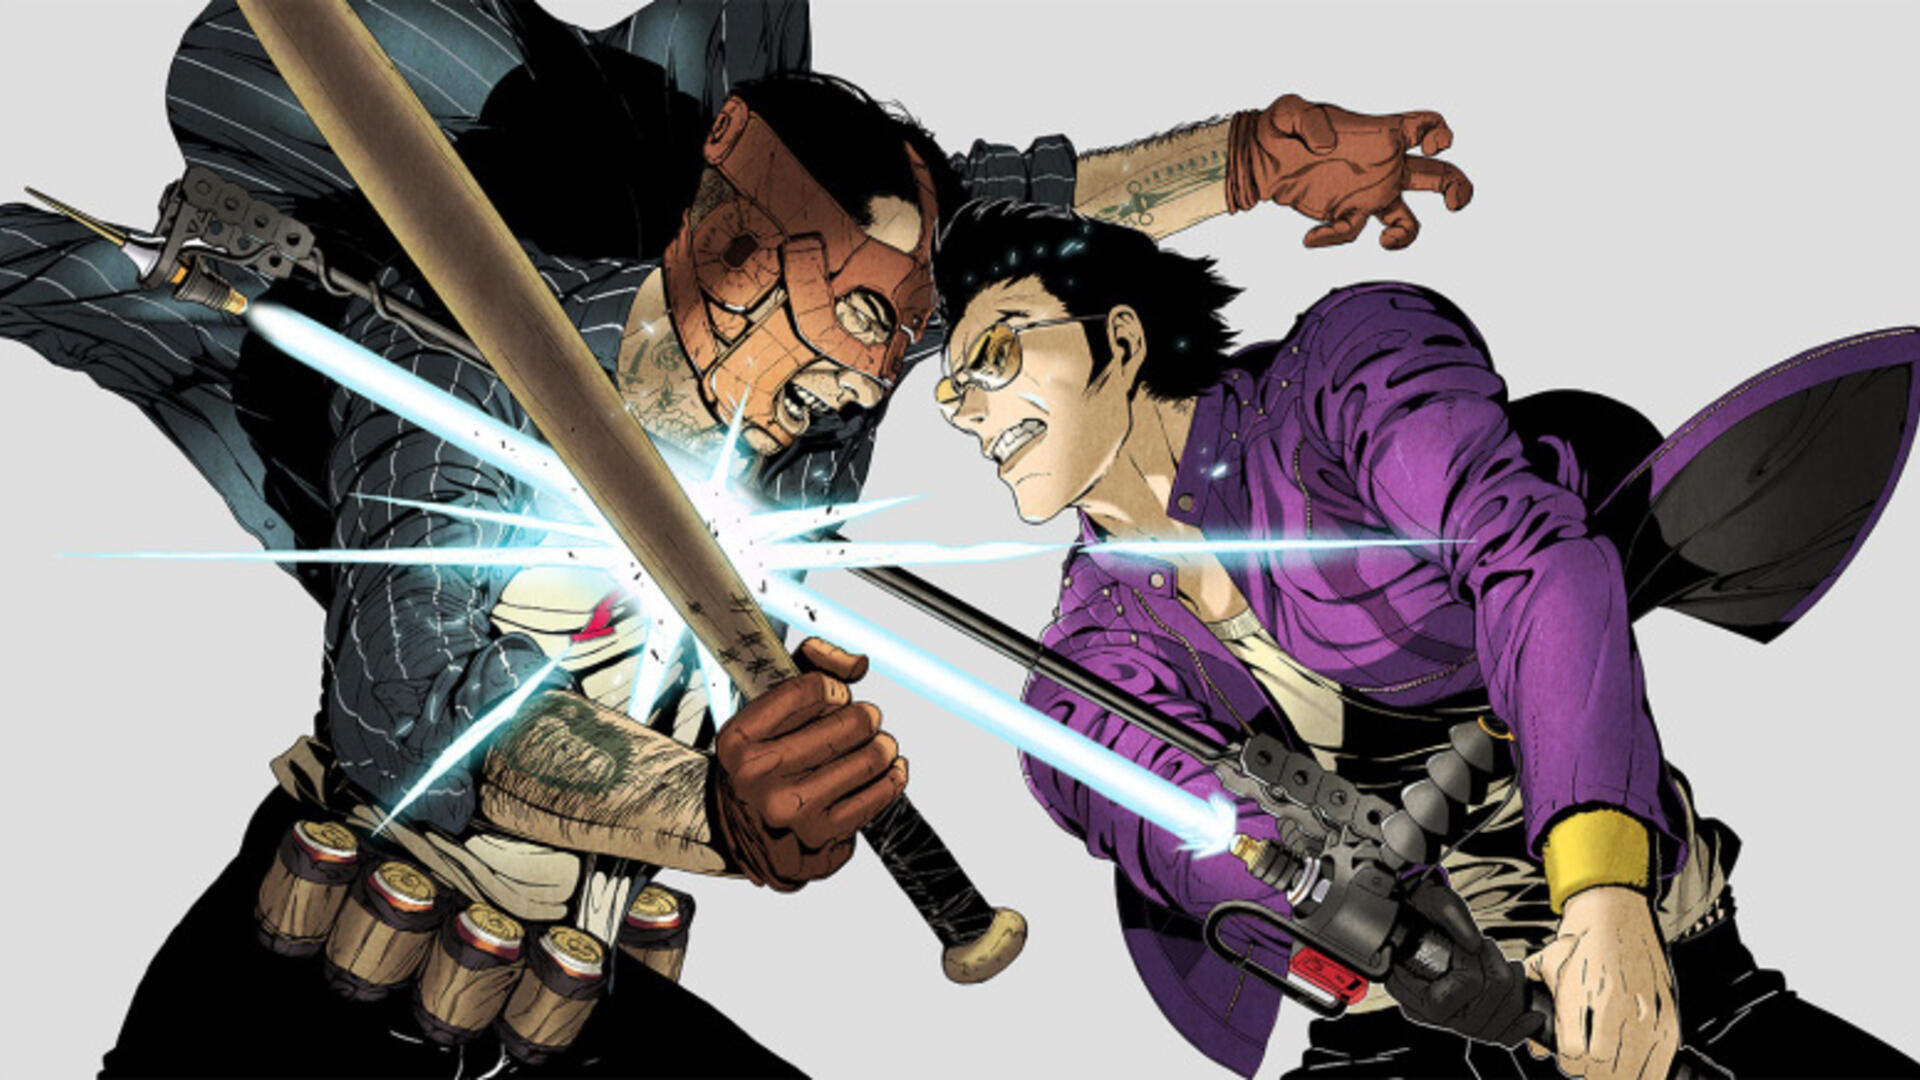 No More Heroes 3 is Finally Here and It's Coming to Switch in 2020